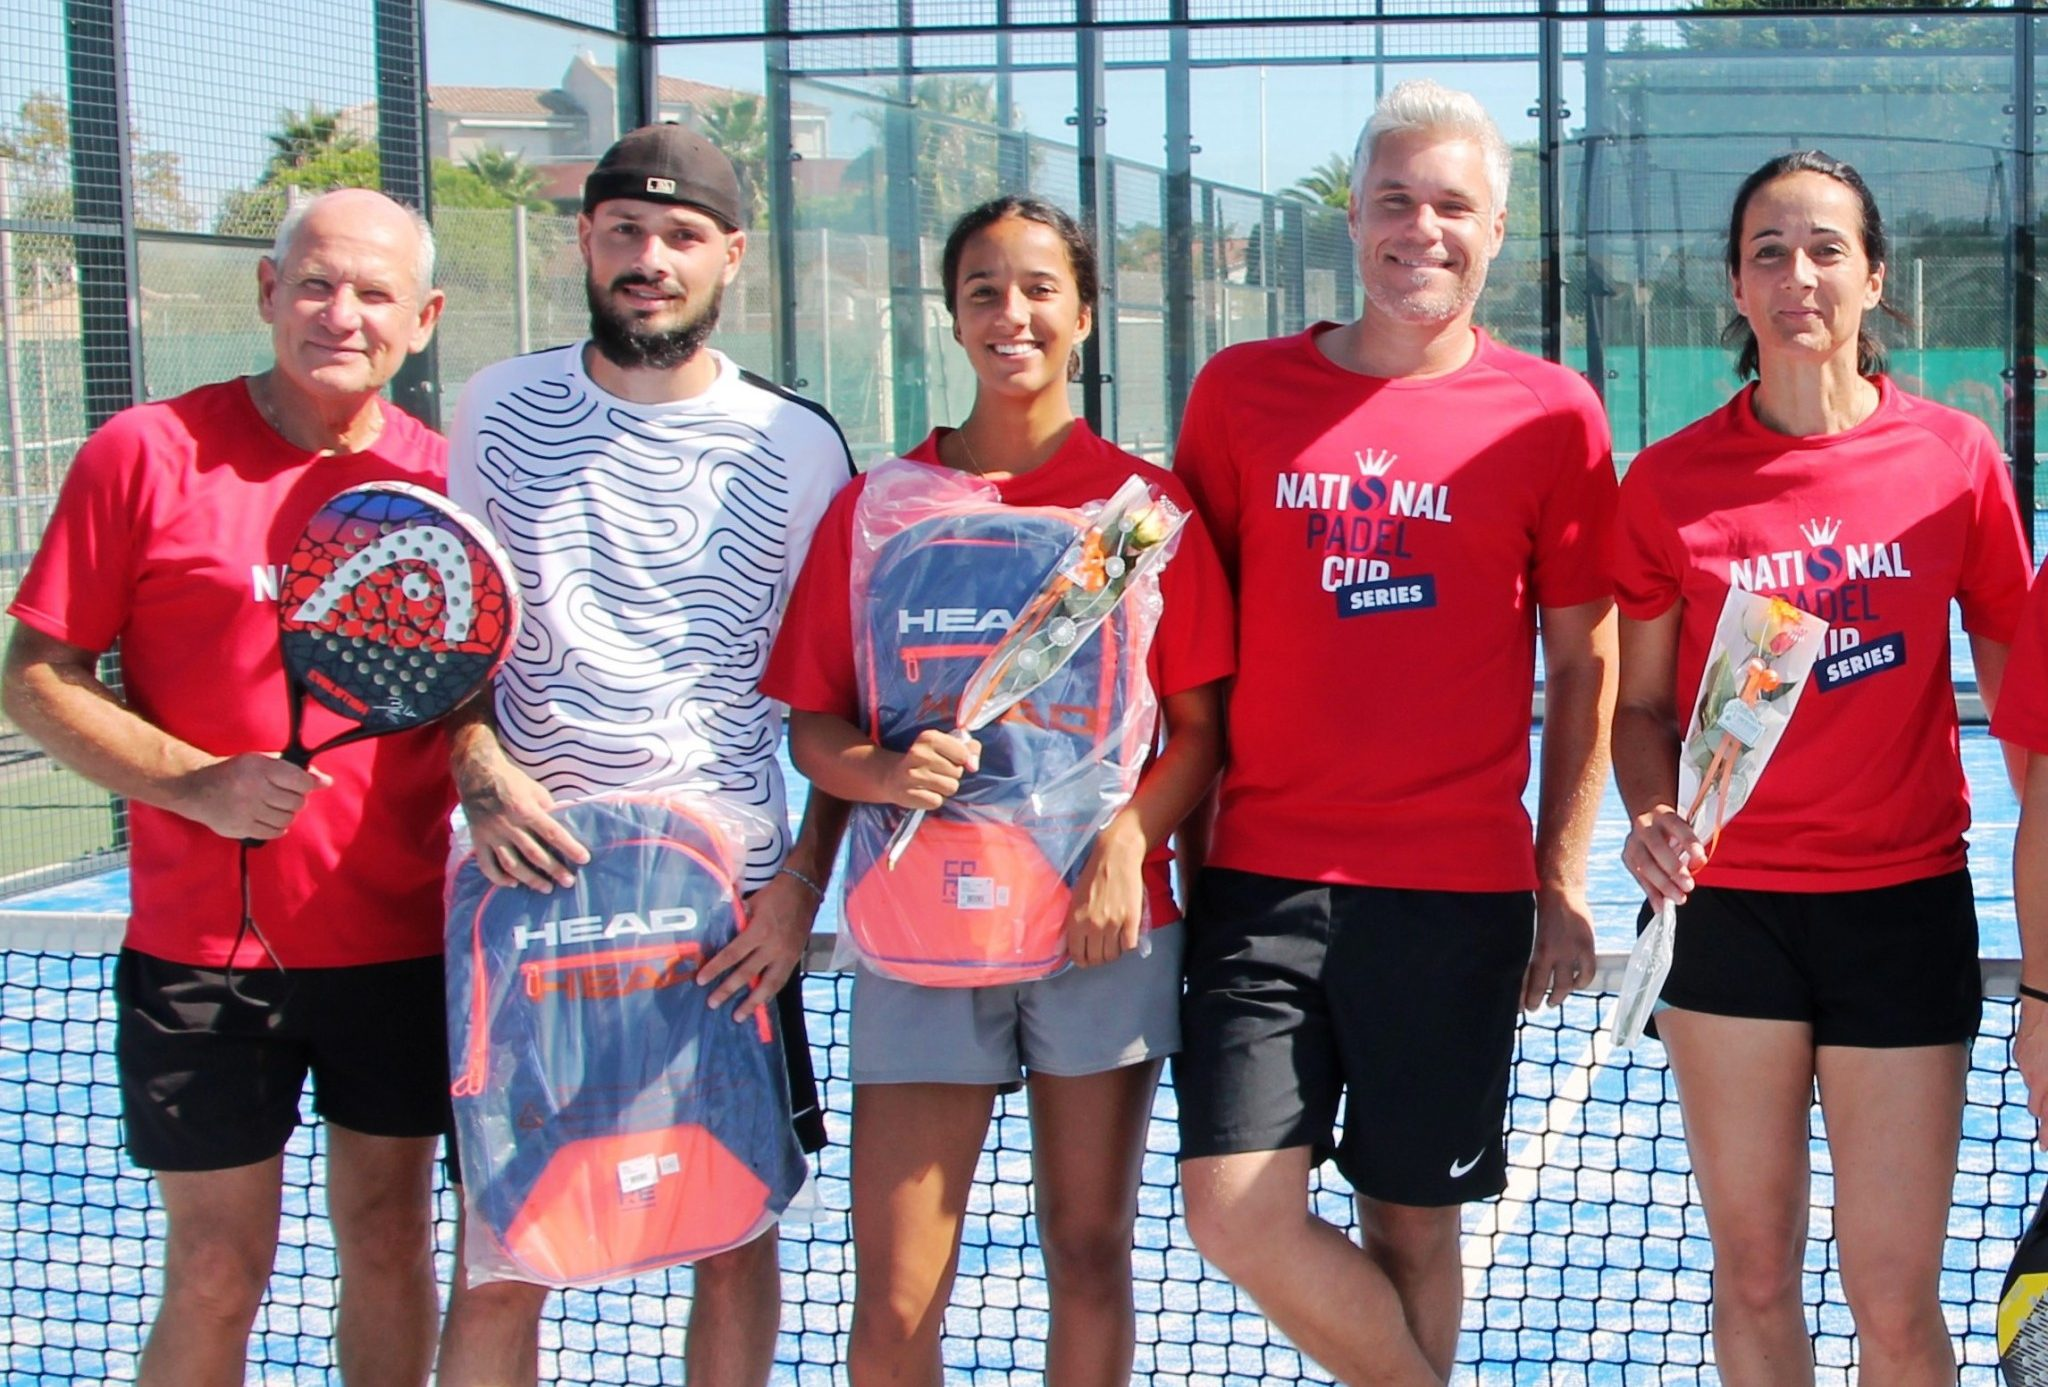 Big winners at the National Padel Cup at Valras Tennis and Padel.